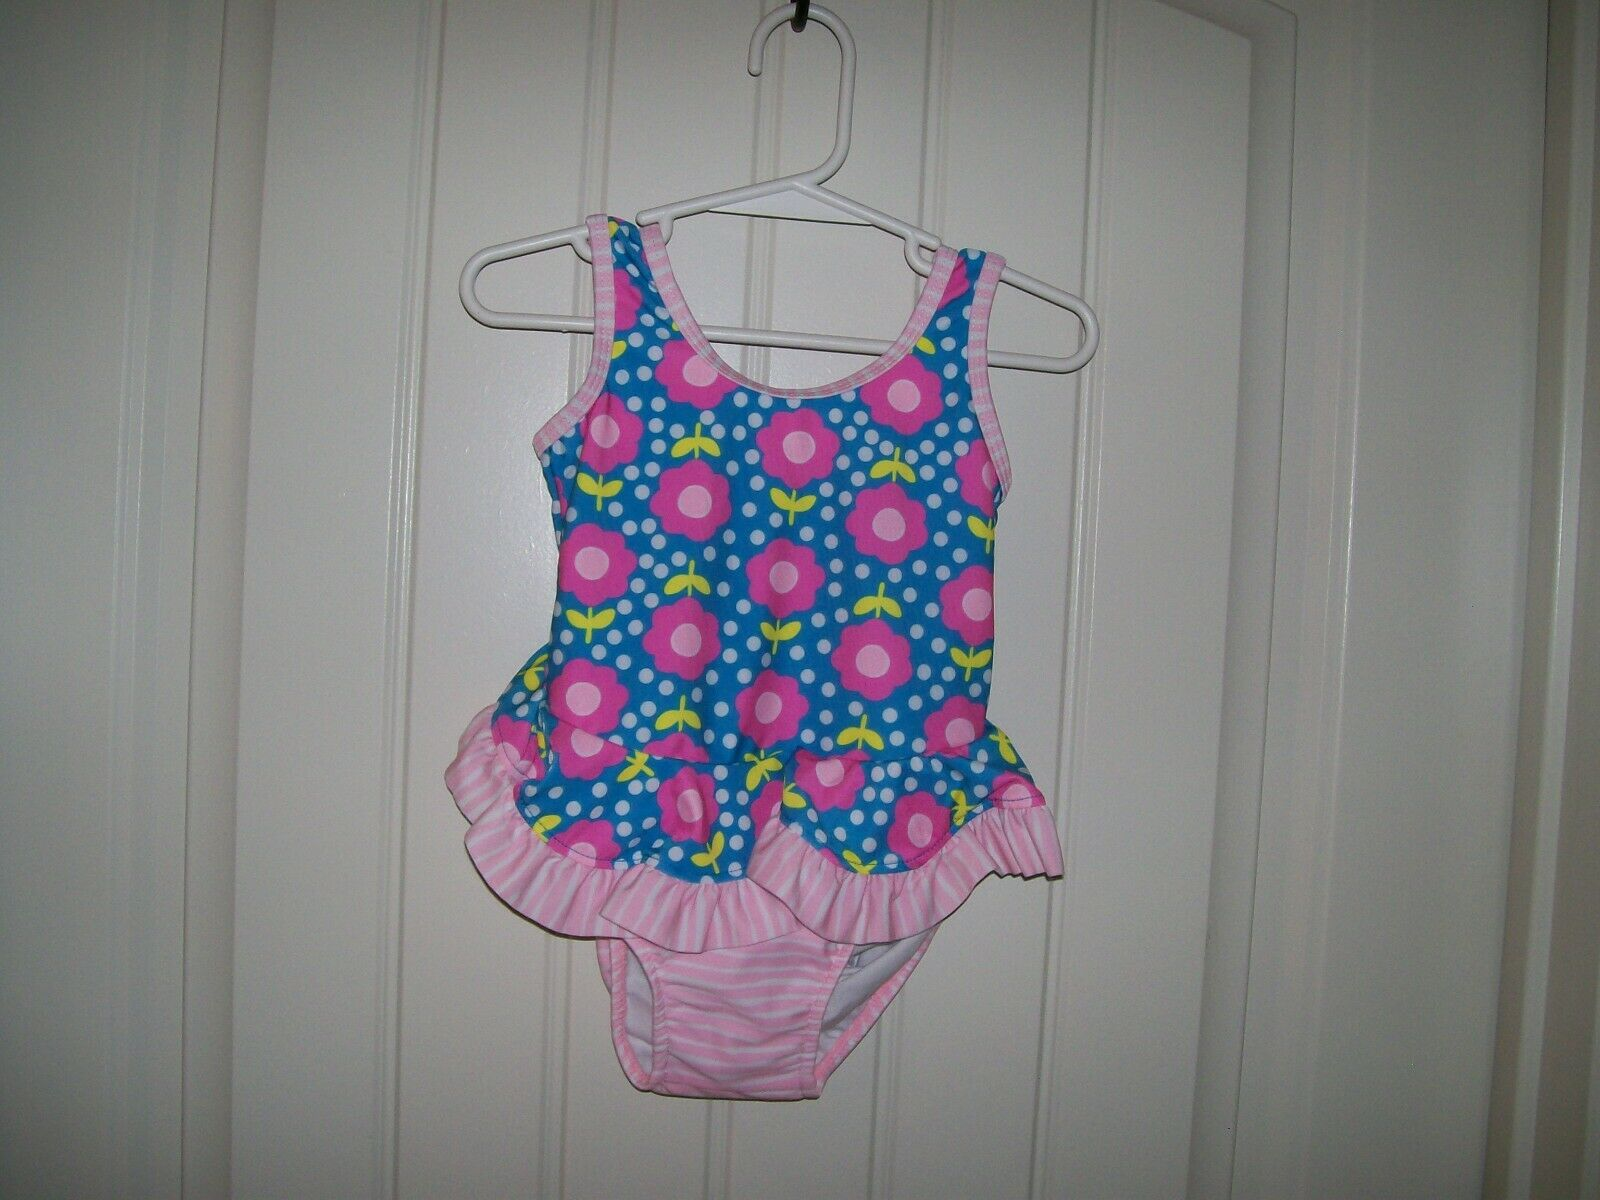 NEW! FLAP HAPPY INFANT GIRLS FLORAL STRIPED SWIMSUIT BUILT I